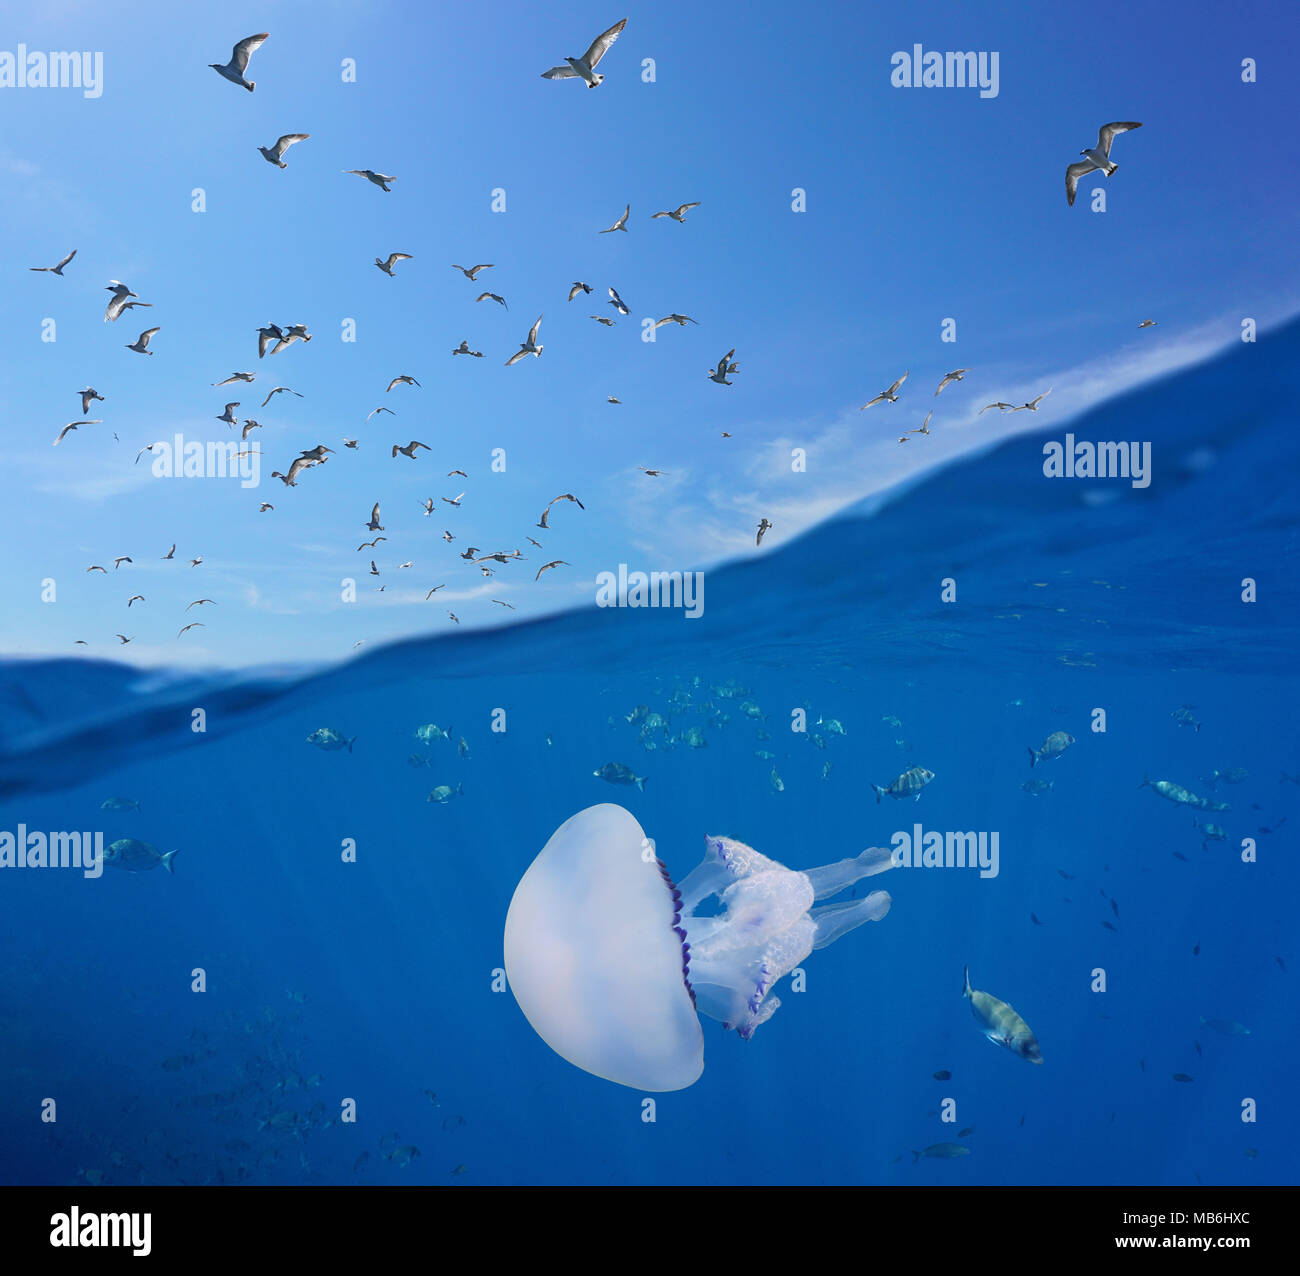 Mediterranean gulls flying in the sky and fishes with a barrel jellyfish underwater sea, split view above and below water surface, Spain, Costa Brava - Stock Image